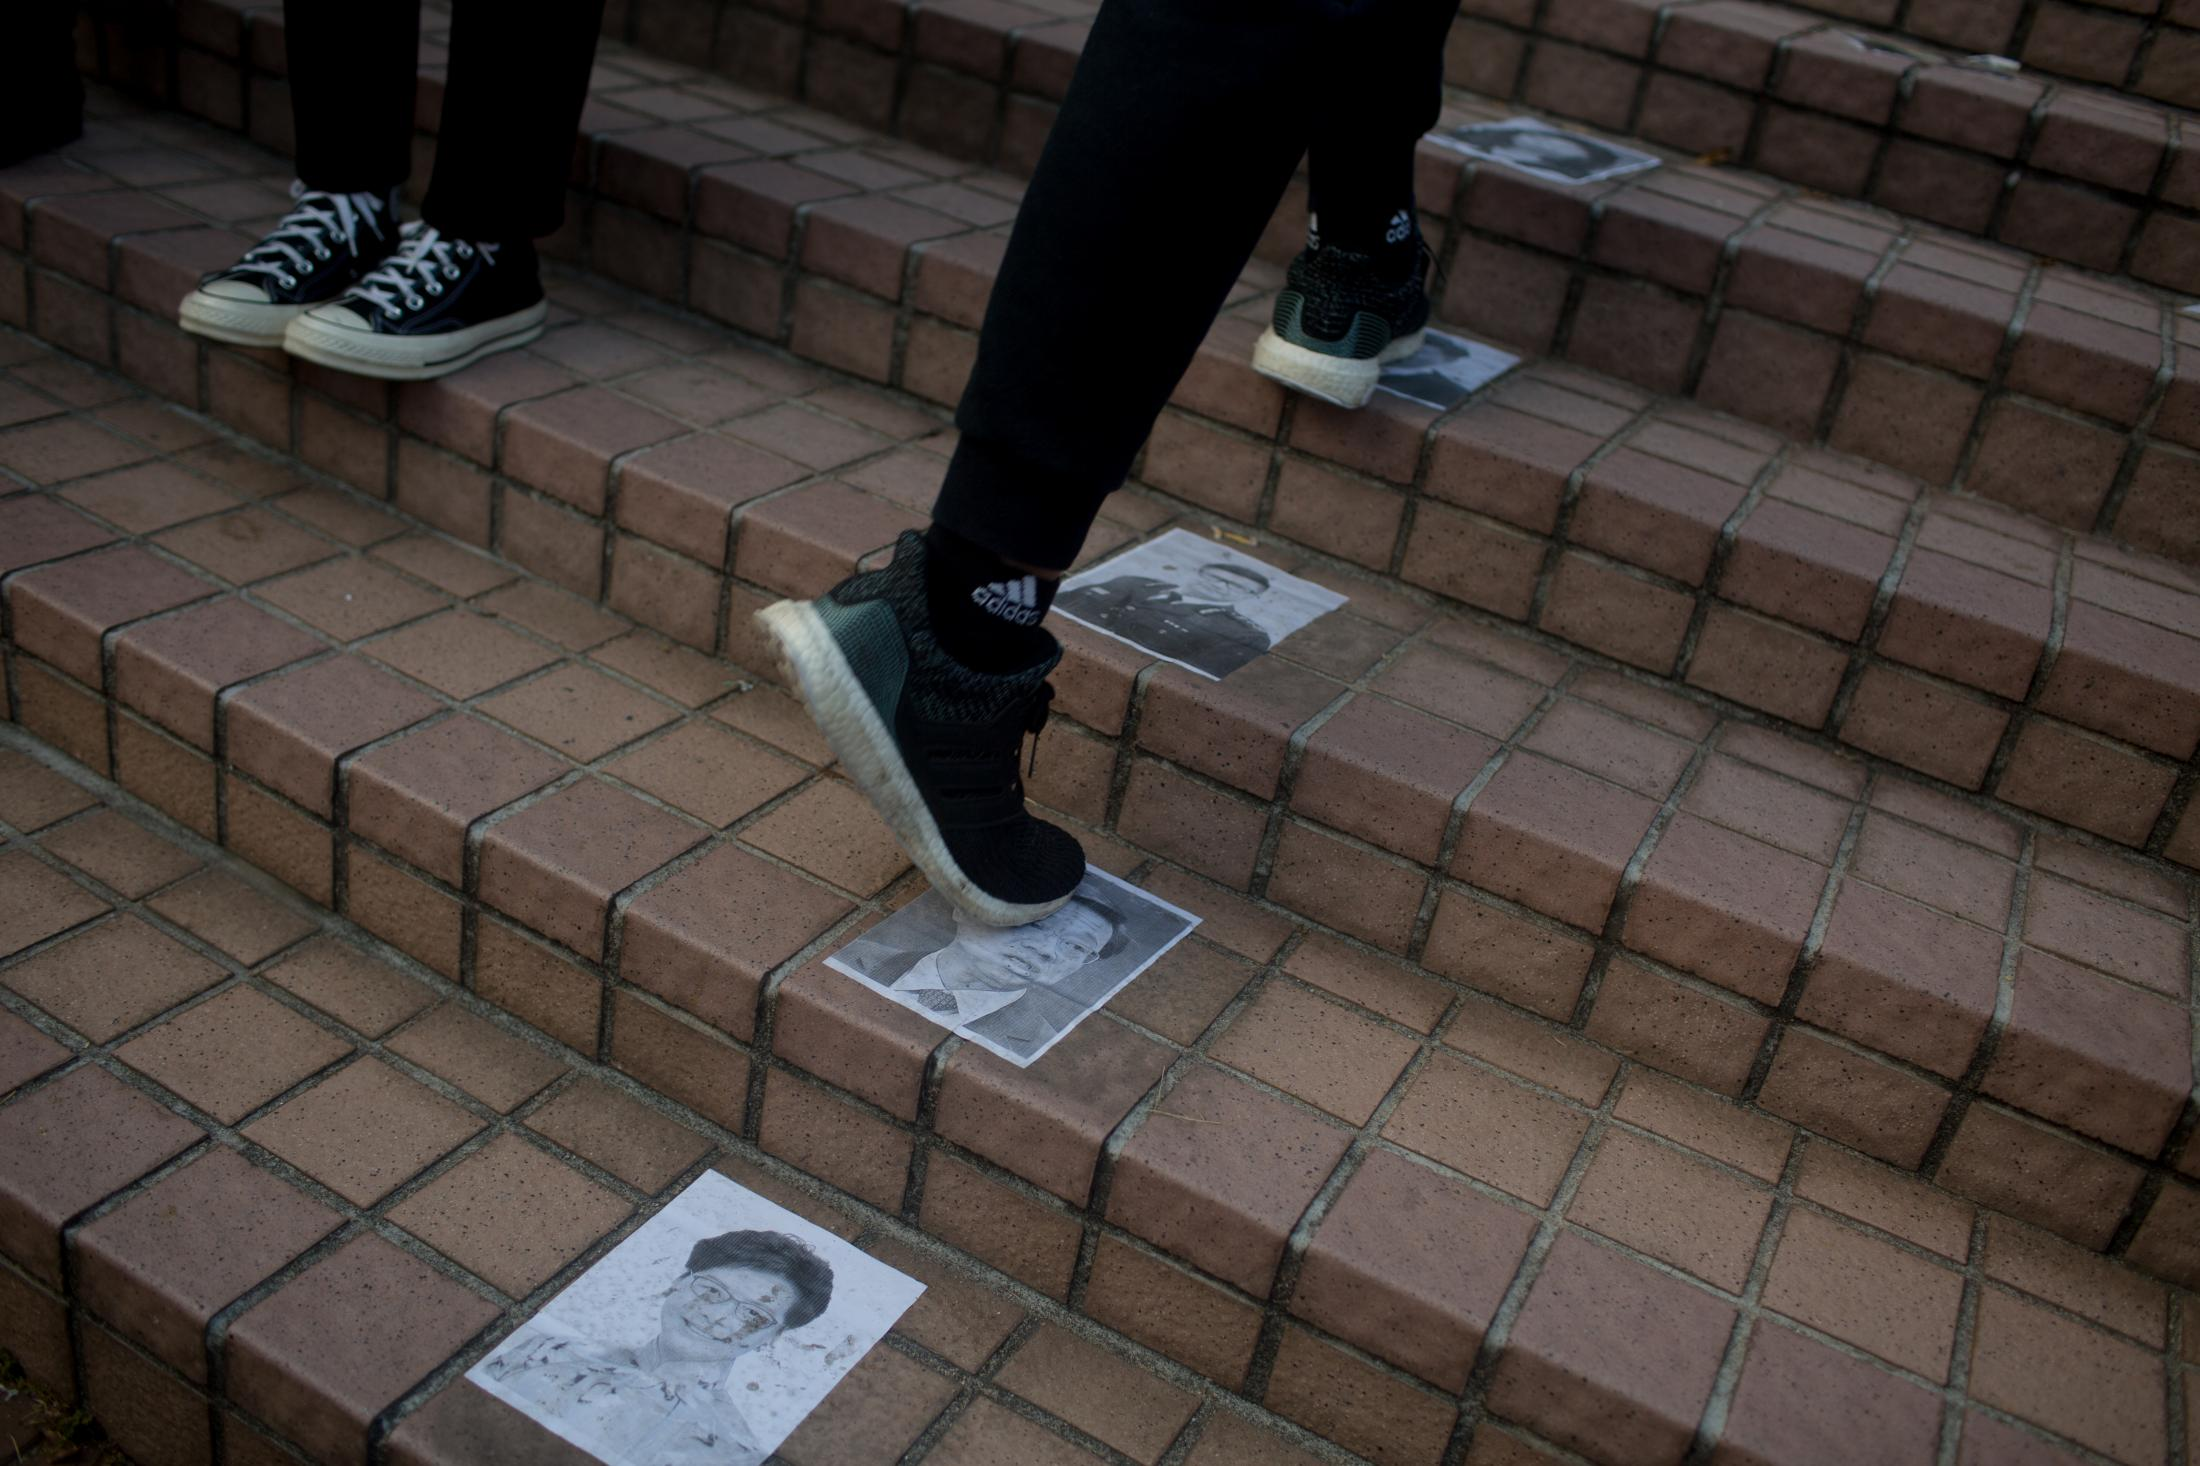 Protesters step on pictures of Beijing friendly leaders on a staircase leading to Edinburgh Place in Central Hong Kong on January 12, 2020.